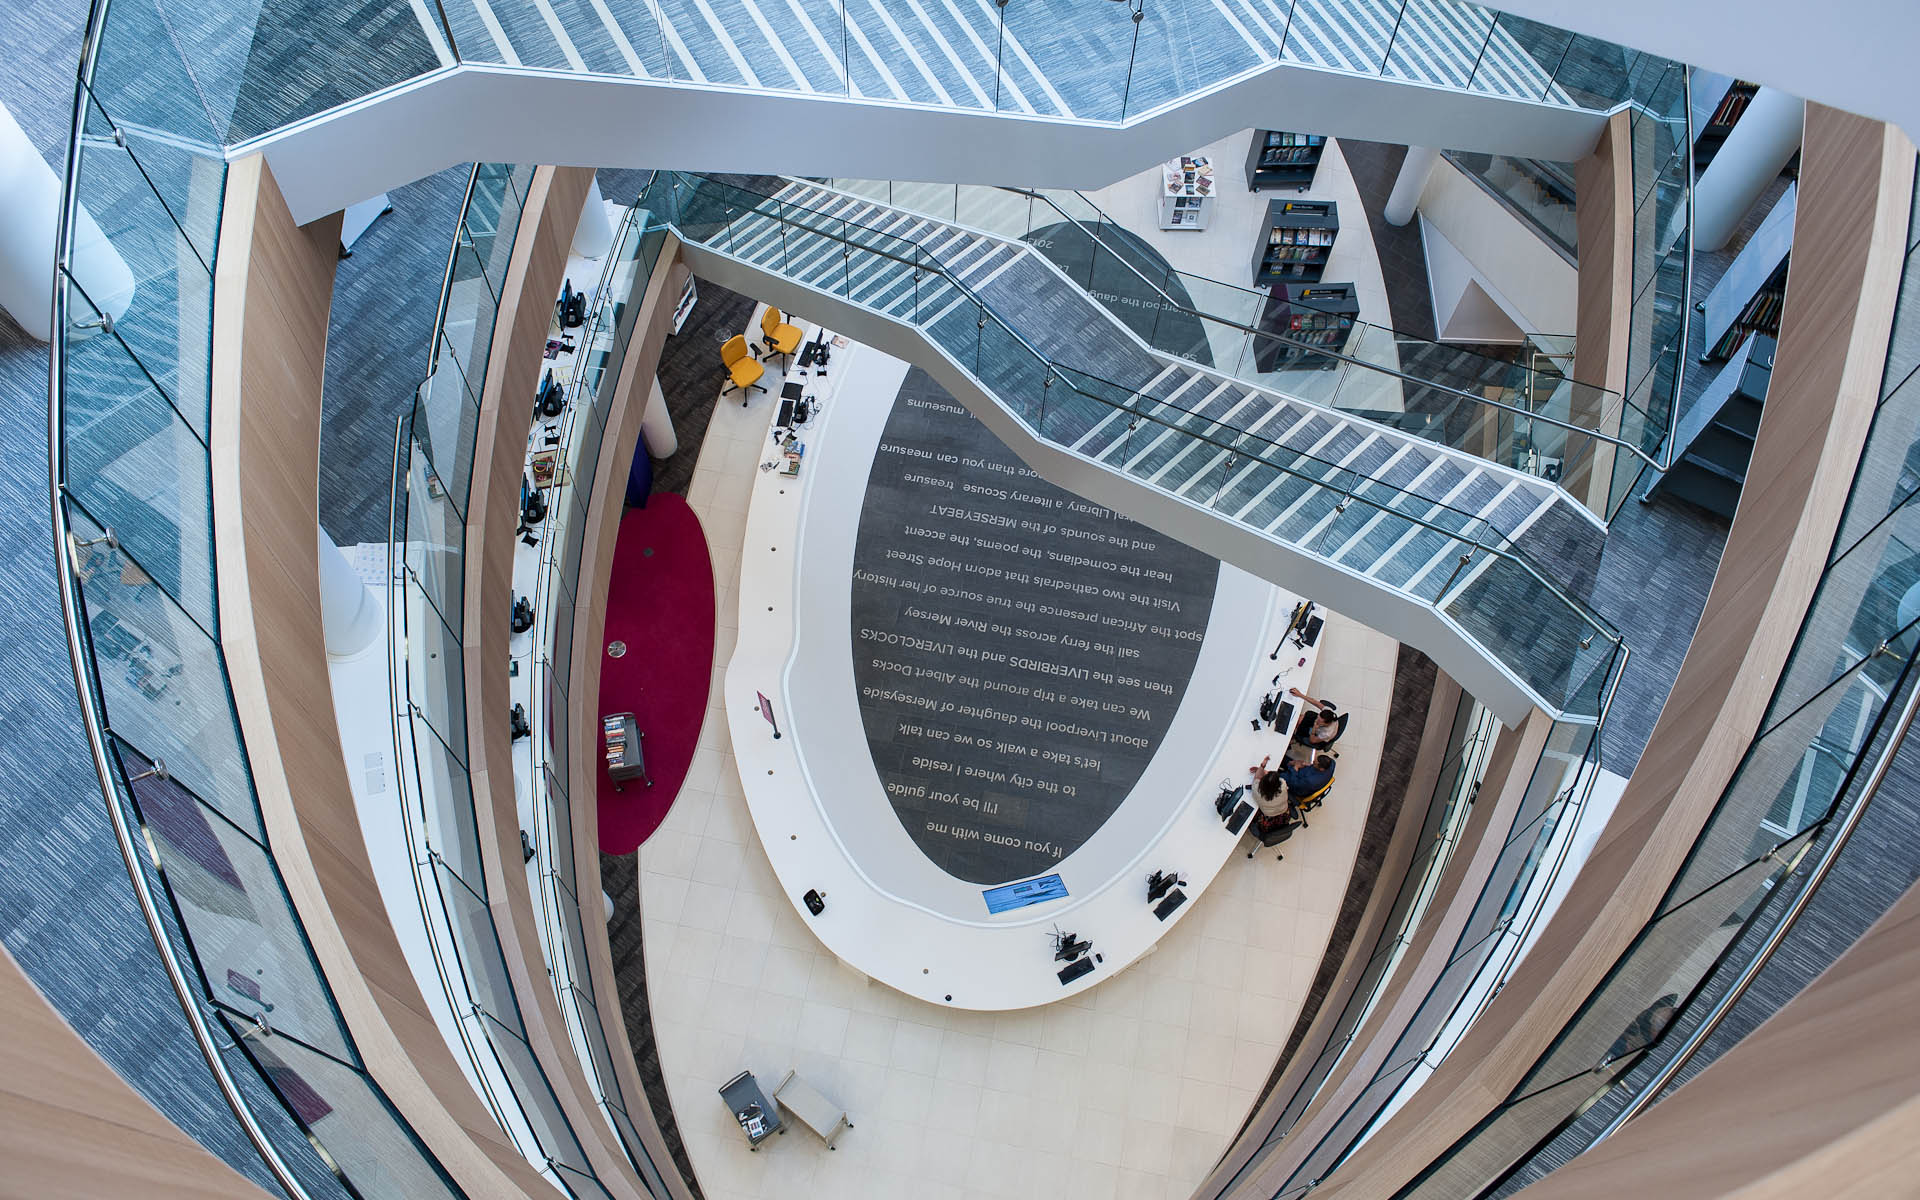 Interior architectural photography aspect of Liverpool Central Library, England